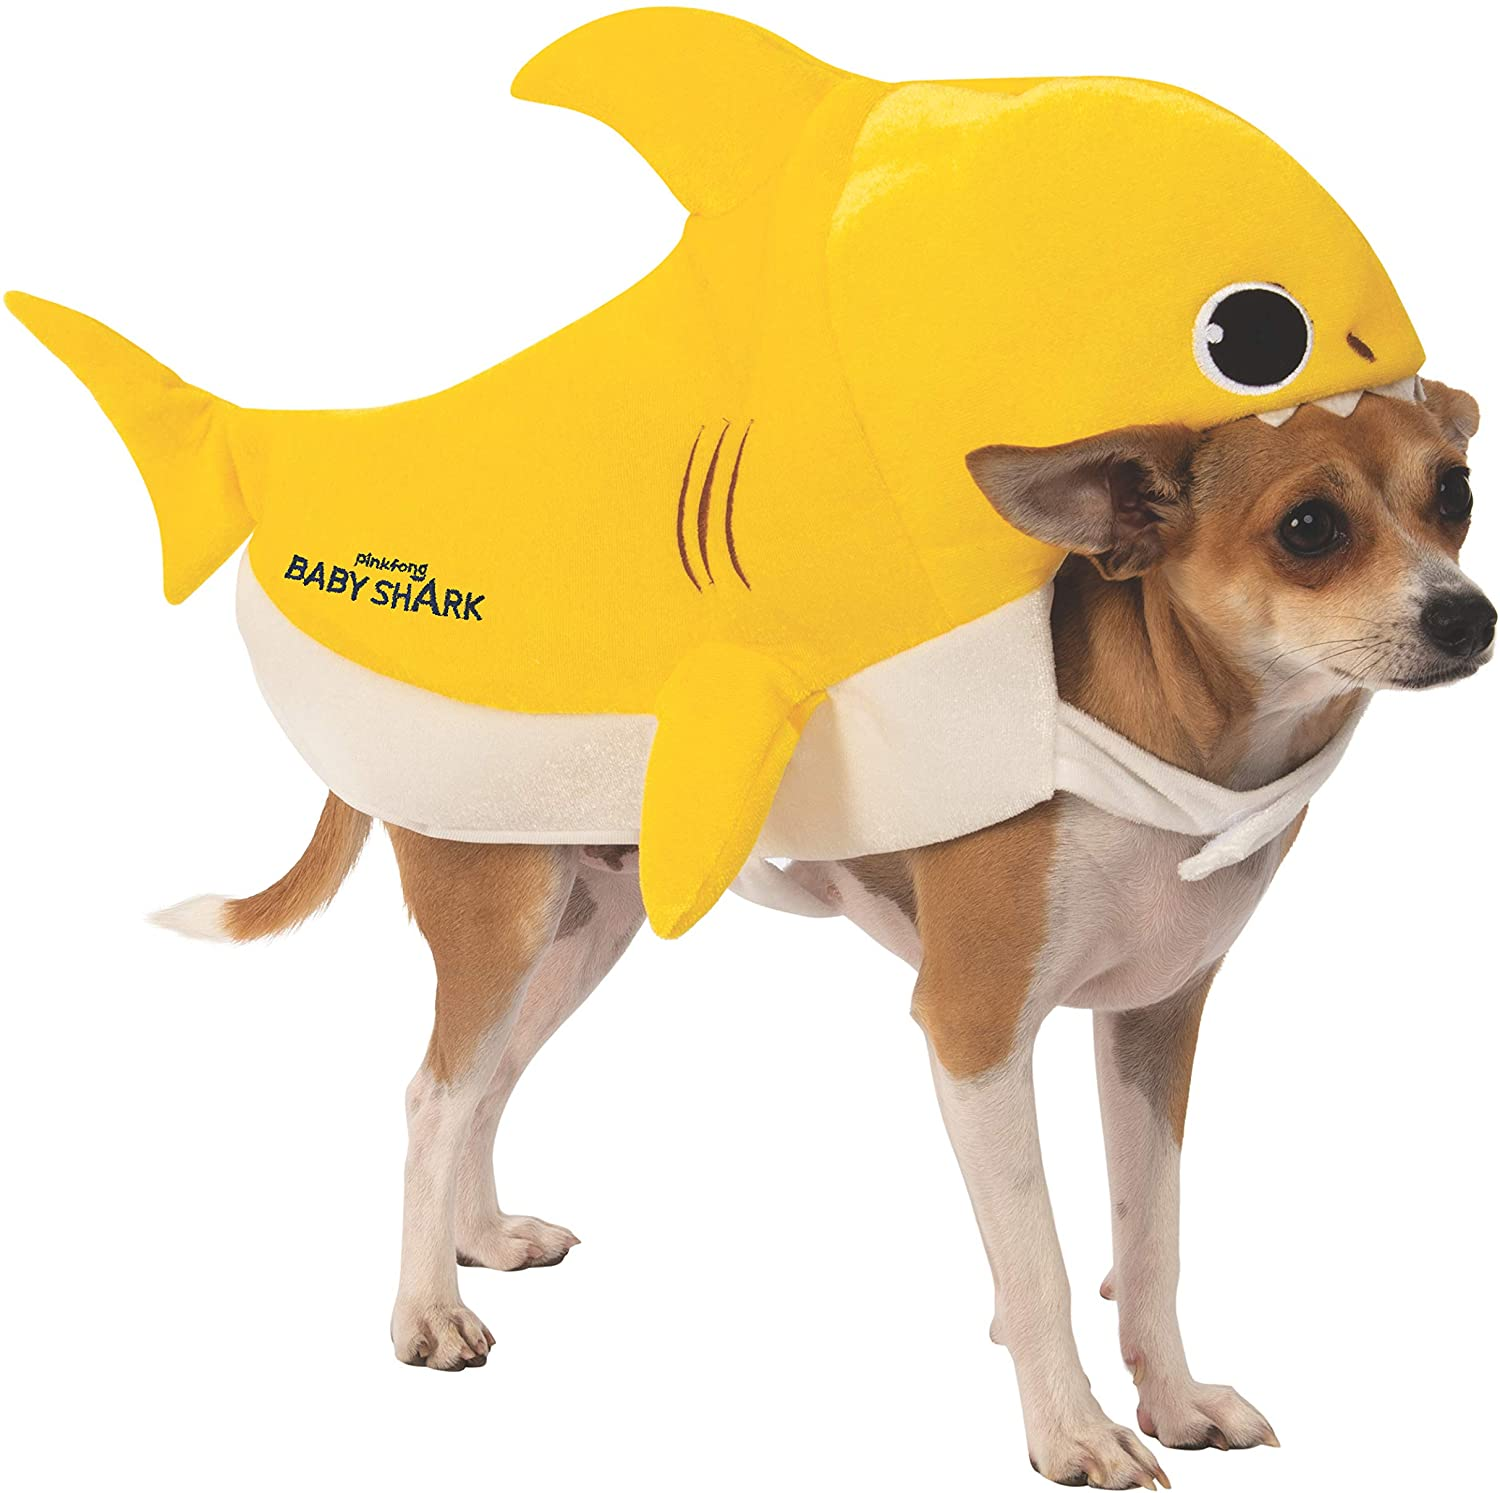 Rubie's Baby Shark Pet Costume